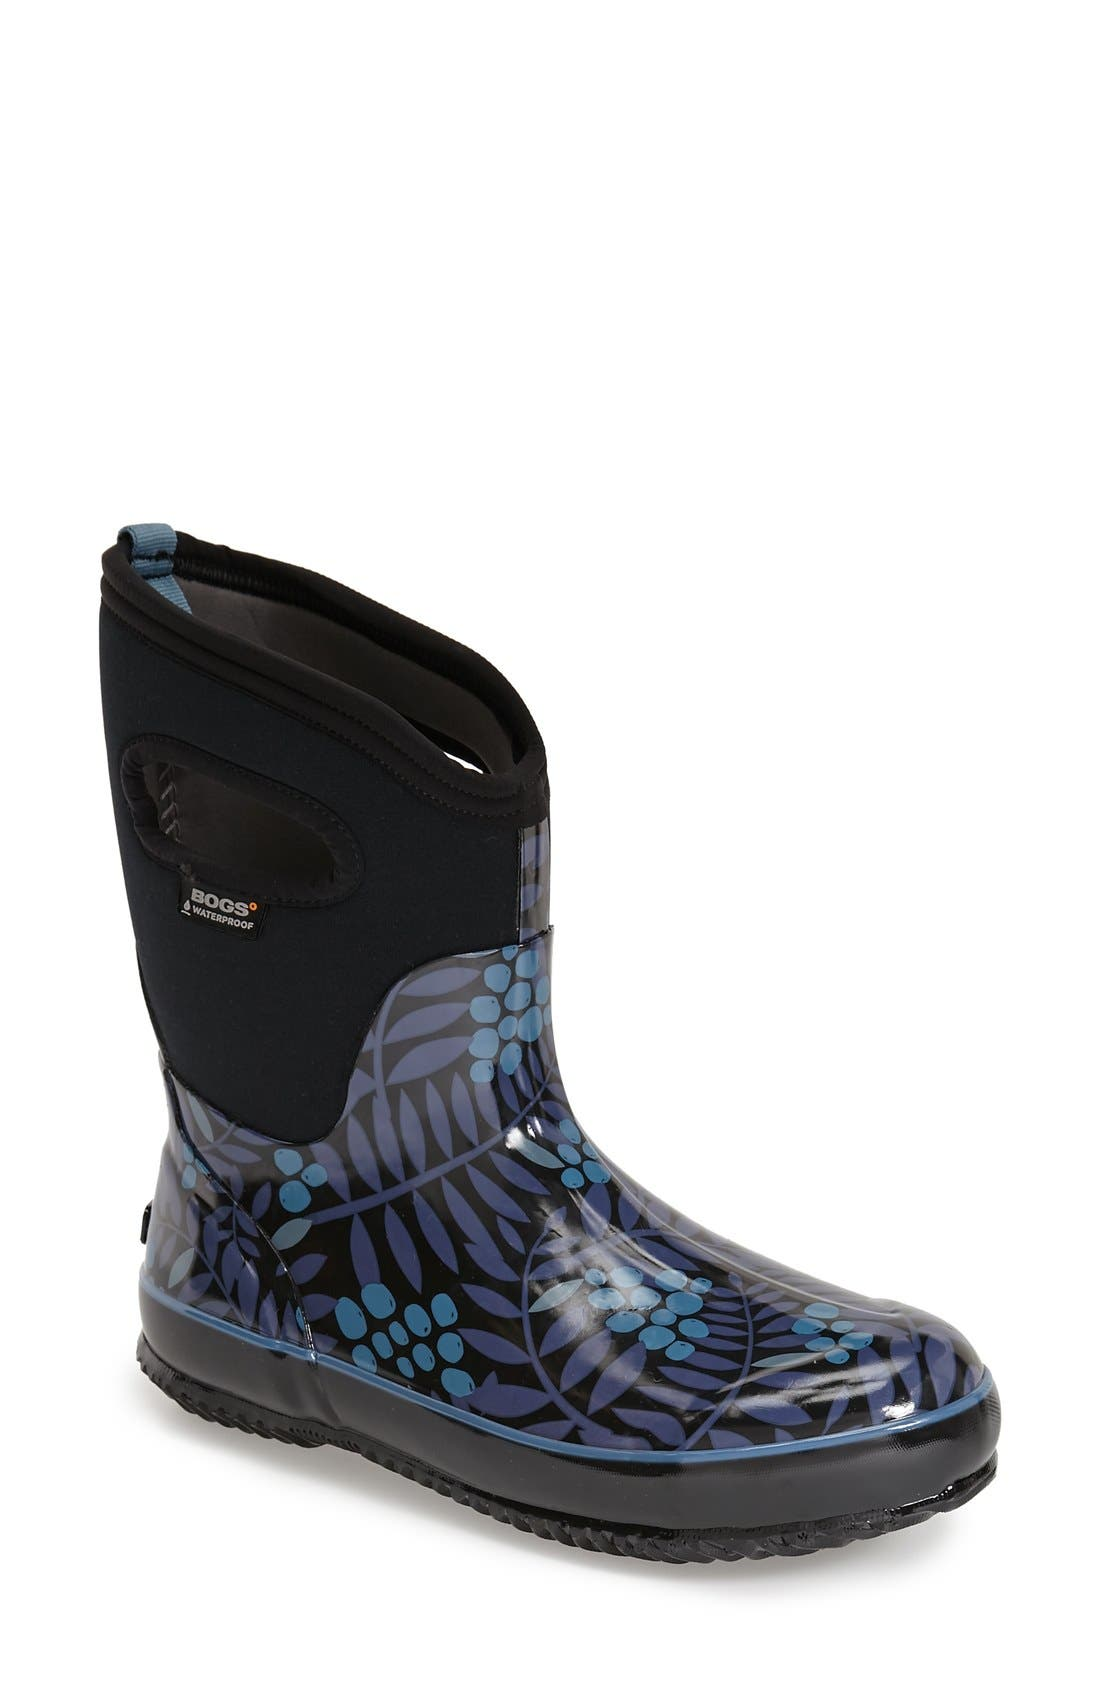 BOGS 'Winterberry' Mid High Waterproof Snow Boot with